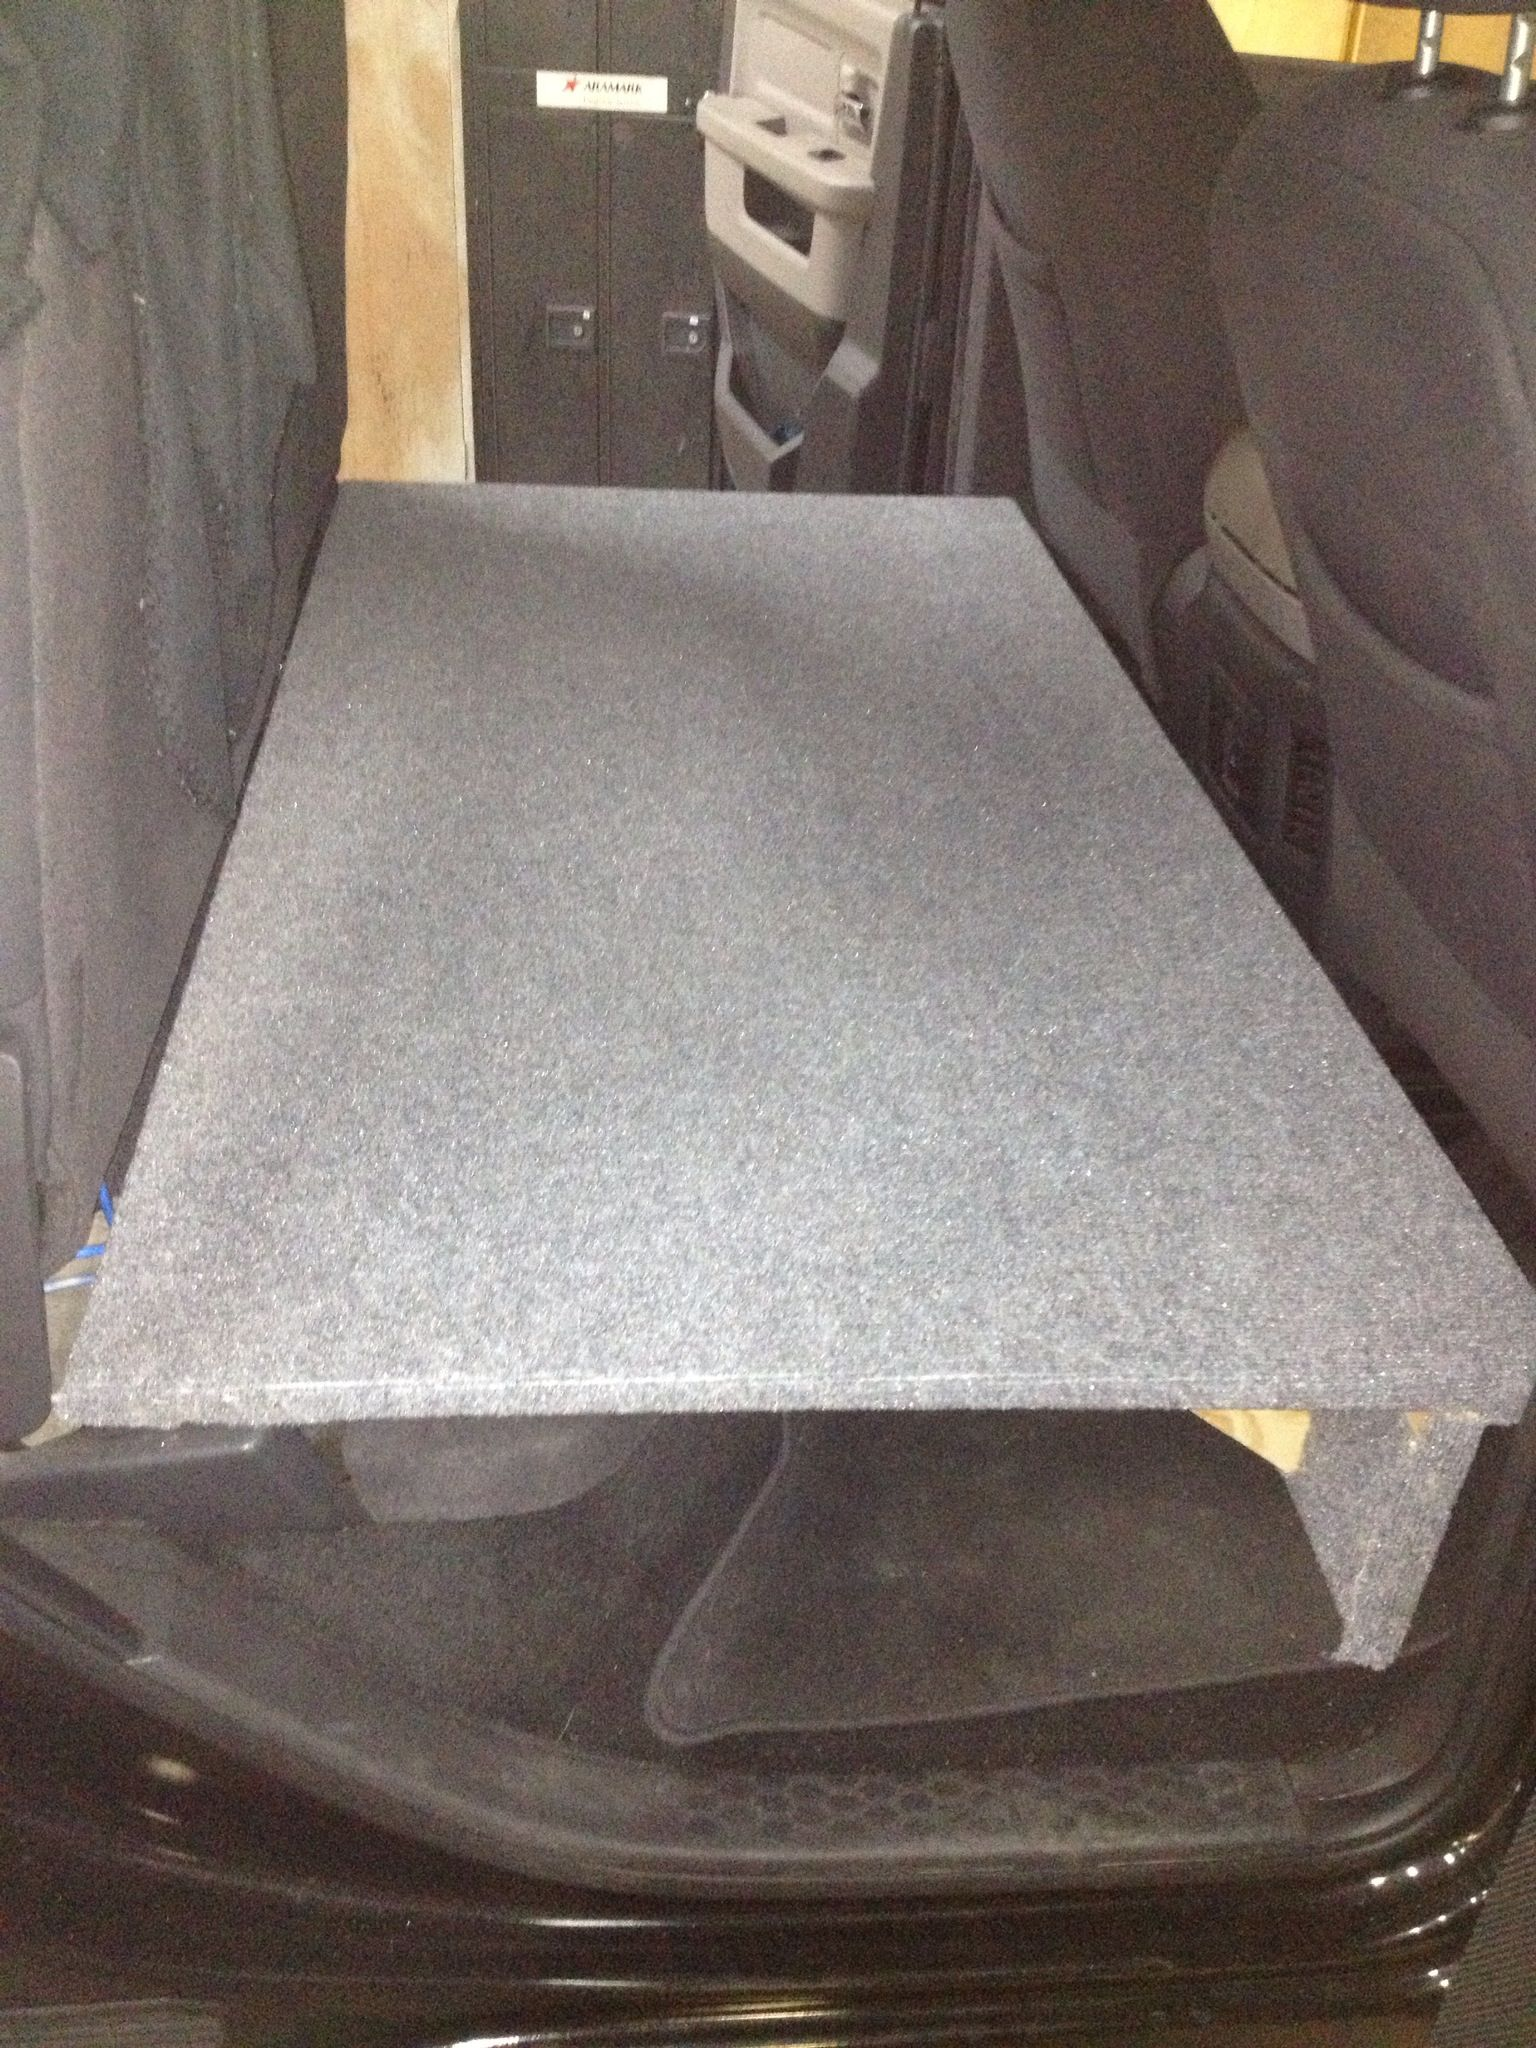 Dog Seat Bed In Back Of Truck Rear Seats Folded Up And Built A Platform For Out Lab To Be Comfortable Truck Accessories Dog Car Accessories Trucks